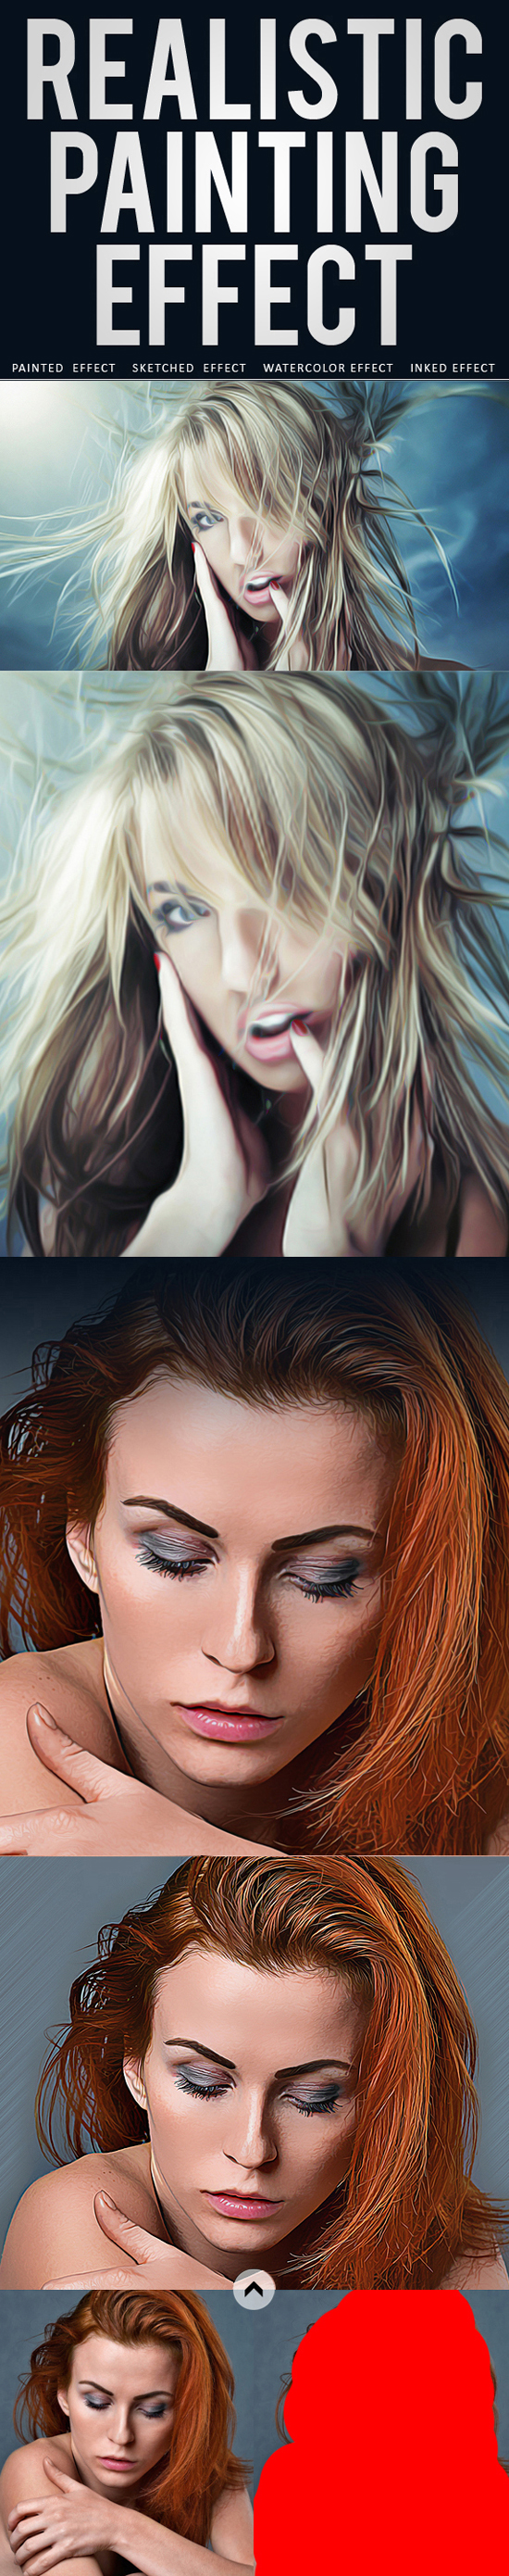 Realistic Painting Effects Photoshop Action